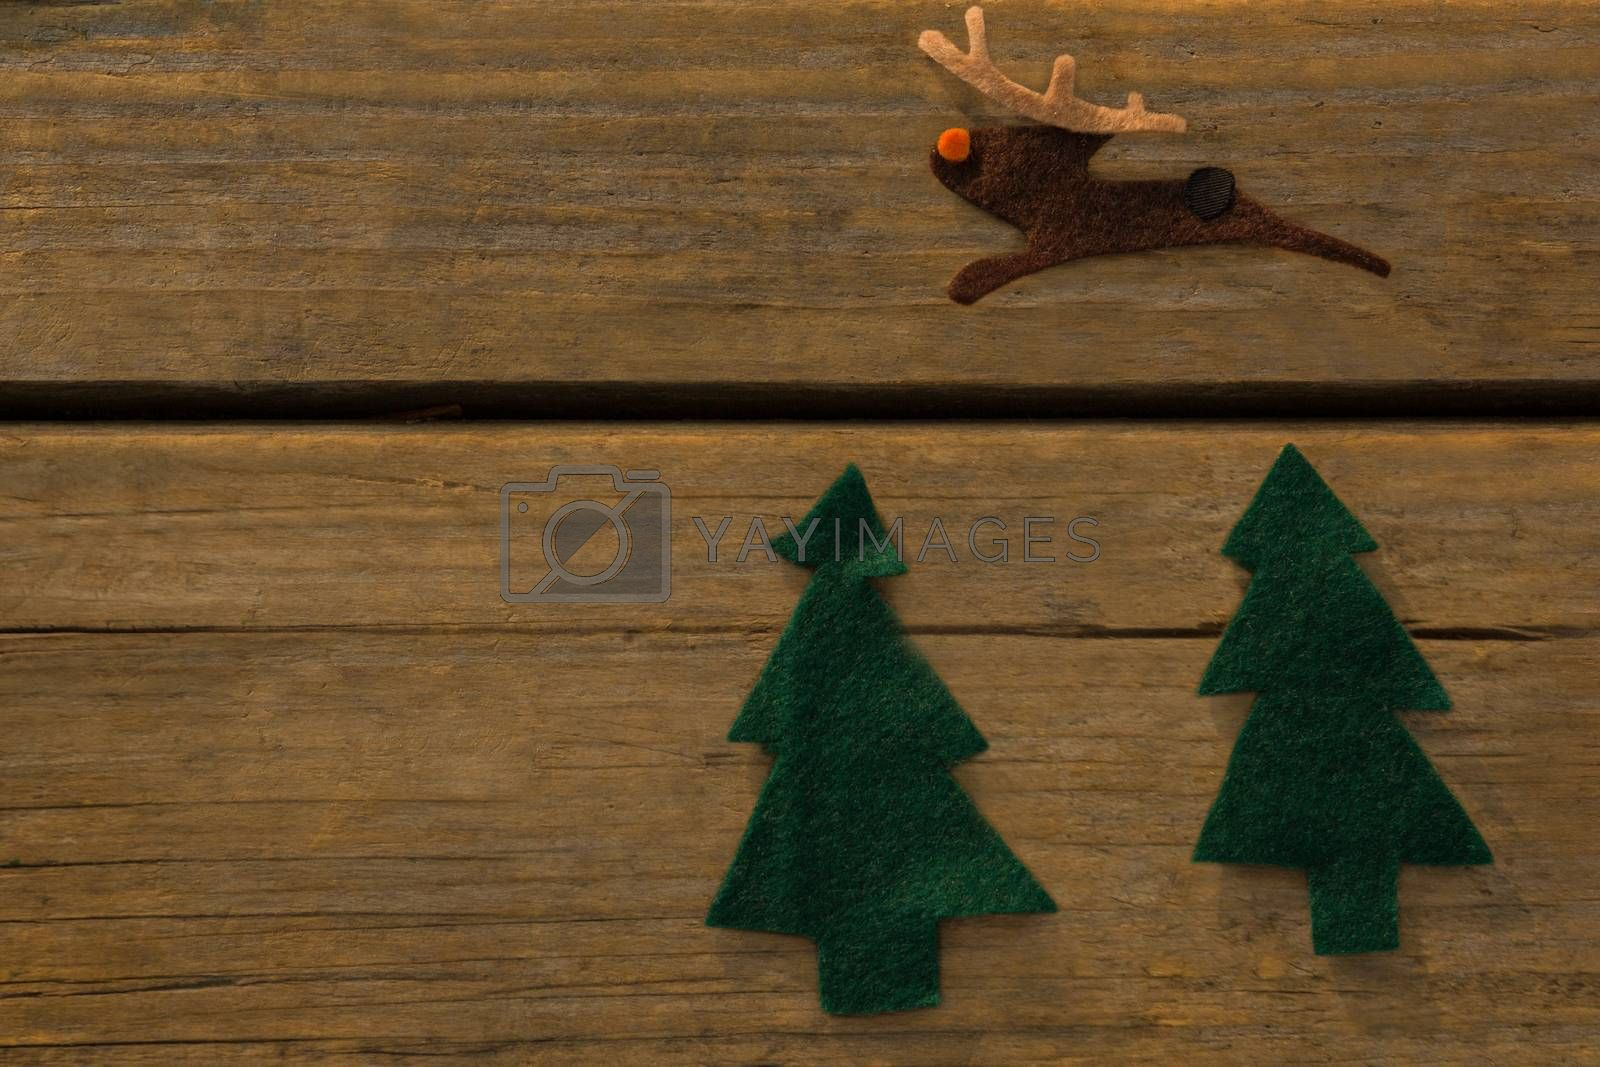 Overhead view of Christmas tree and reindeer decoration by Wavebreakmedia